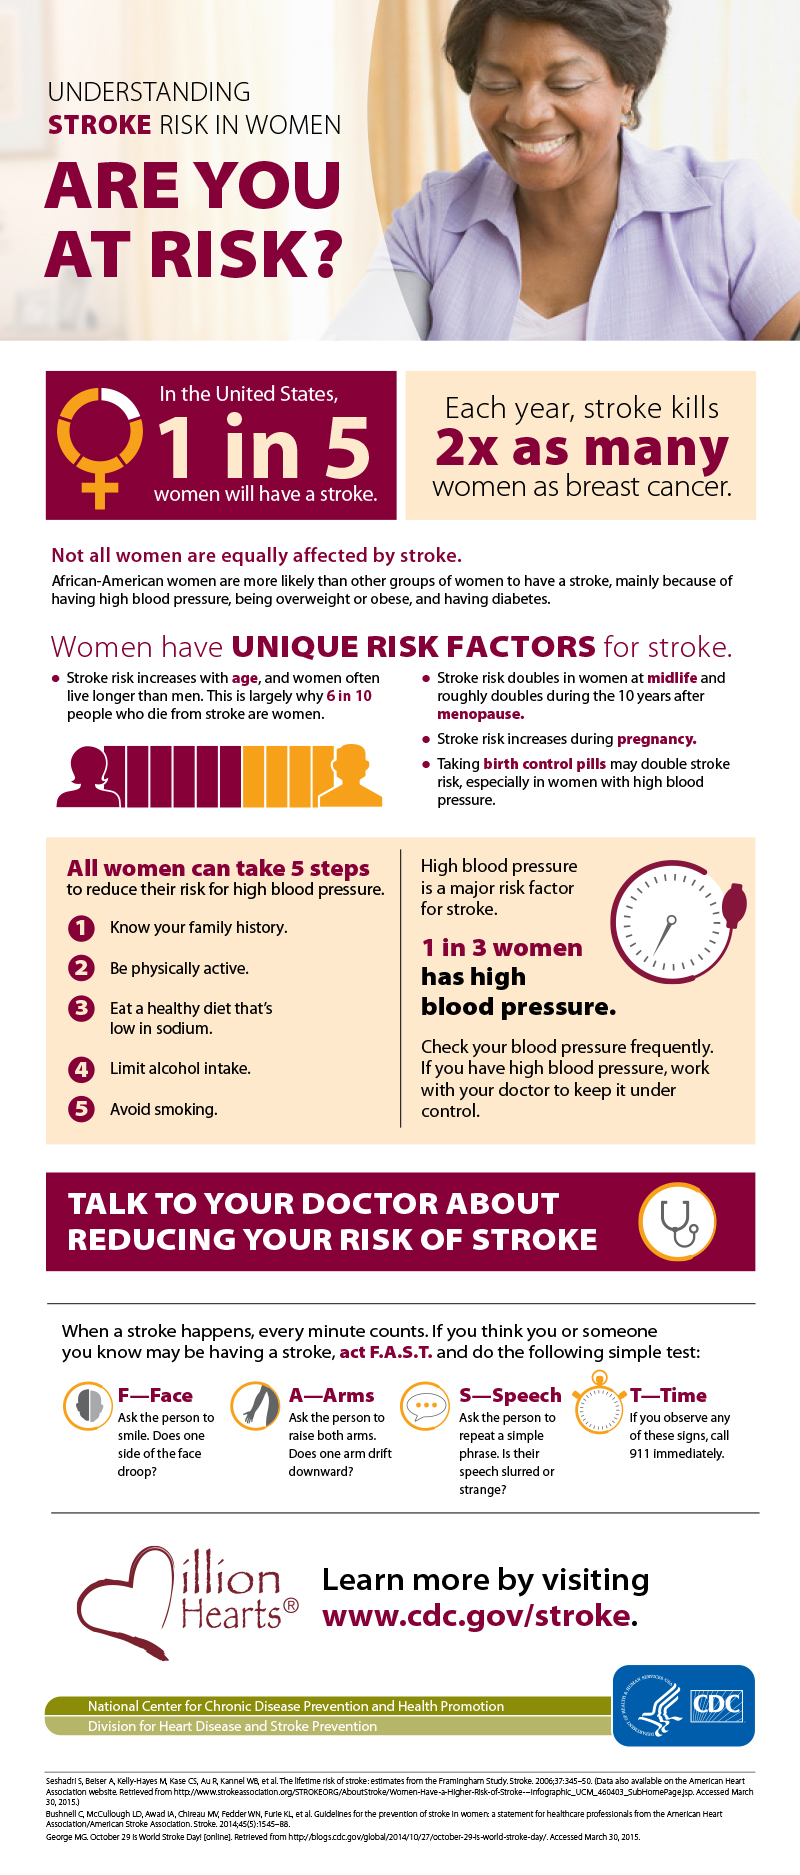 Understanding stroke risk in women. Are you at risk? In the United States, 1 in 5 women will have a stroke. Learn more by visiting http://www.cdc.gov/stroke/ today!